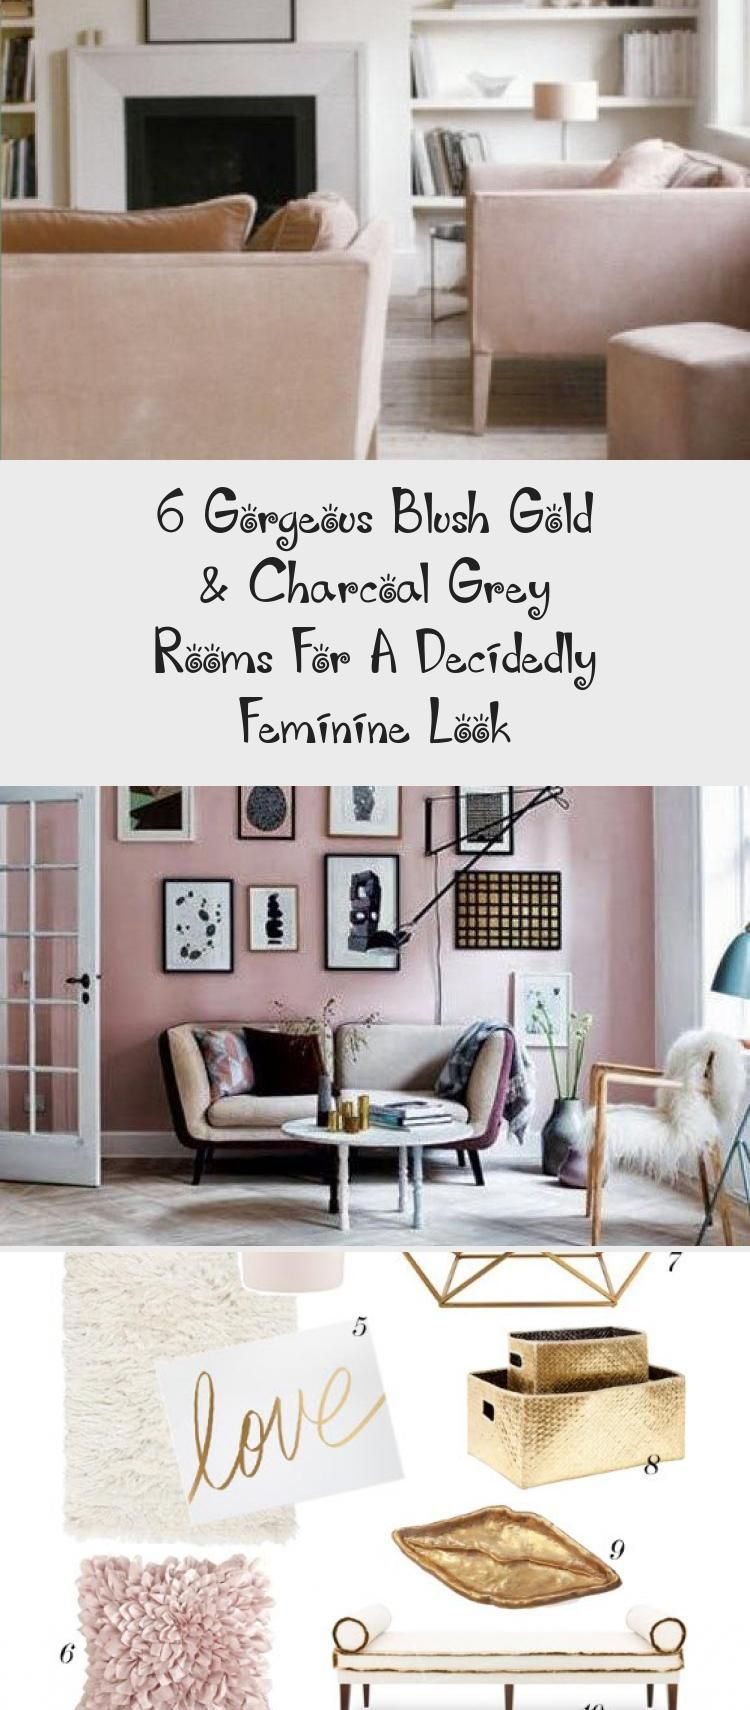 Interior design is like the fashion world (although very few of us change our décor with the seasons as much as we do our clothes) but there are definite TRENDS in interiors too. Trending right now are the colours BLUSH, GOLD and CHARCOAL GREYS. #interiordesigntips #blushgold #interiordesignideas #blushgolddecor #interiordesignBohemian #interiordesignSketches #Vintageinteriordesign #interiordesignGrey #interiordesignPresentation